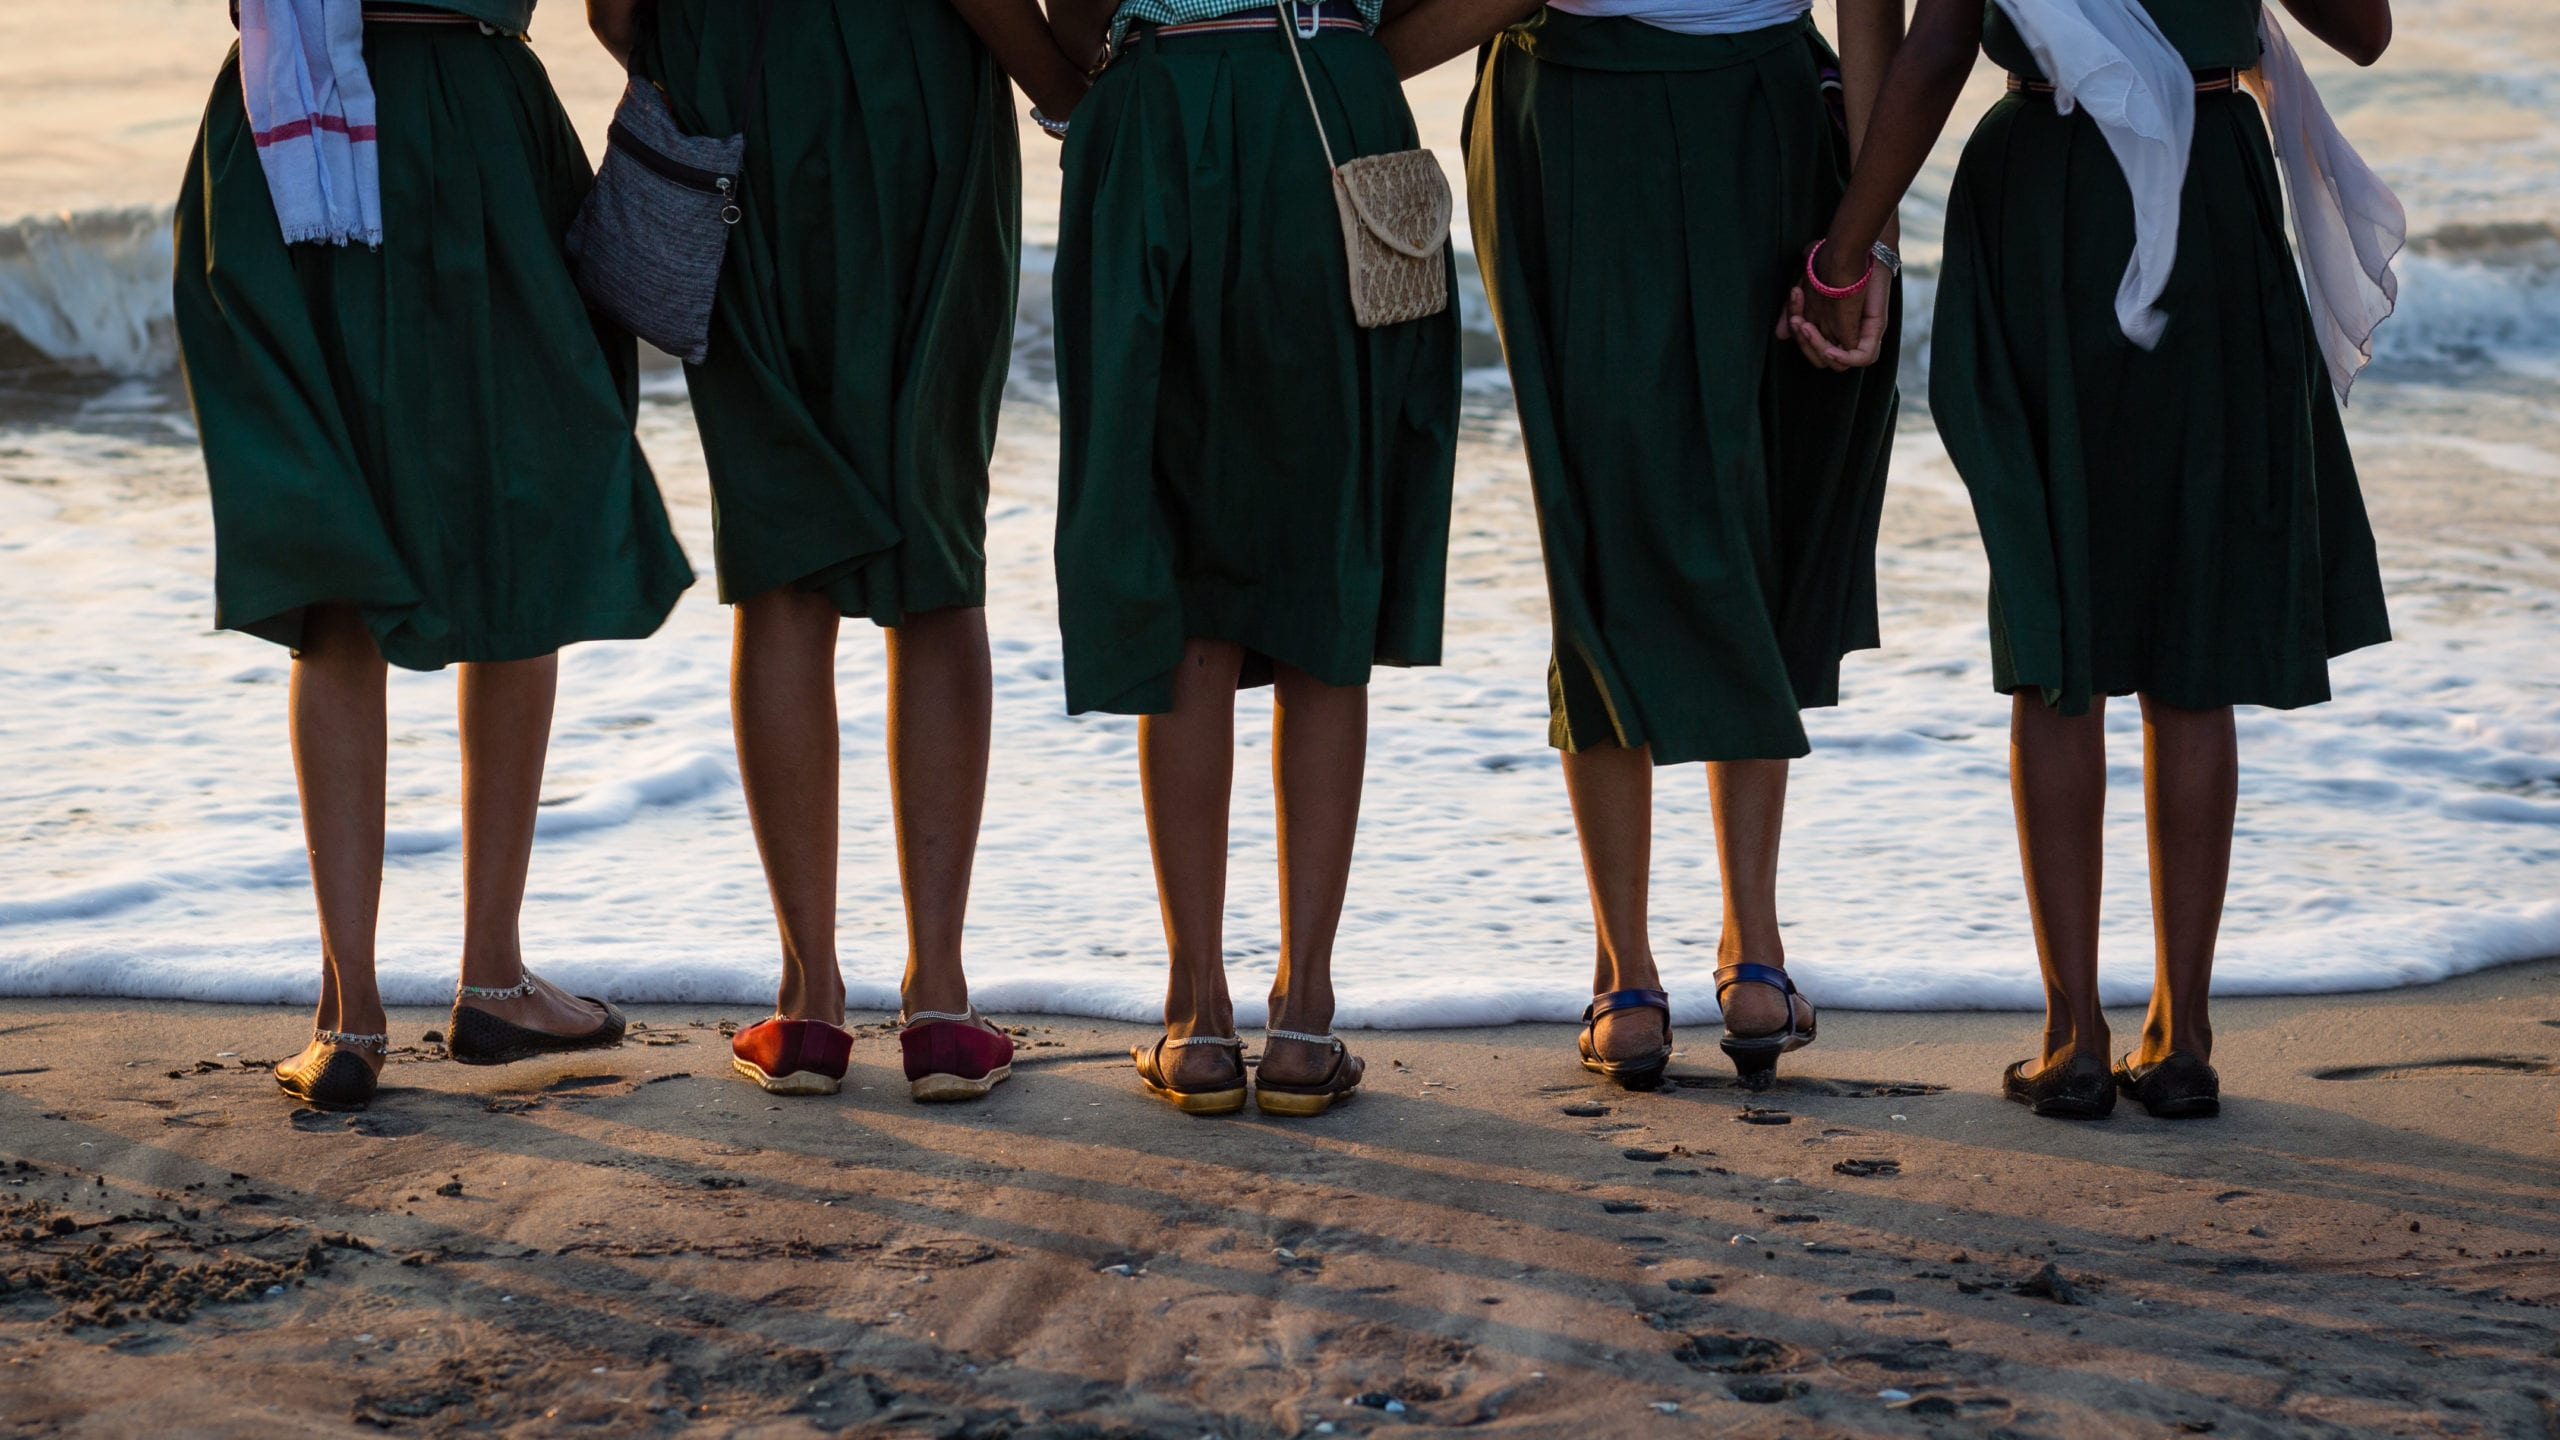 The Devastating Consequences of Period Poverty for Girls